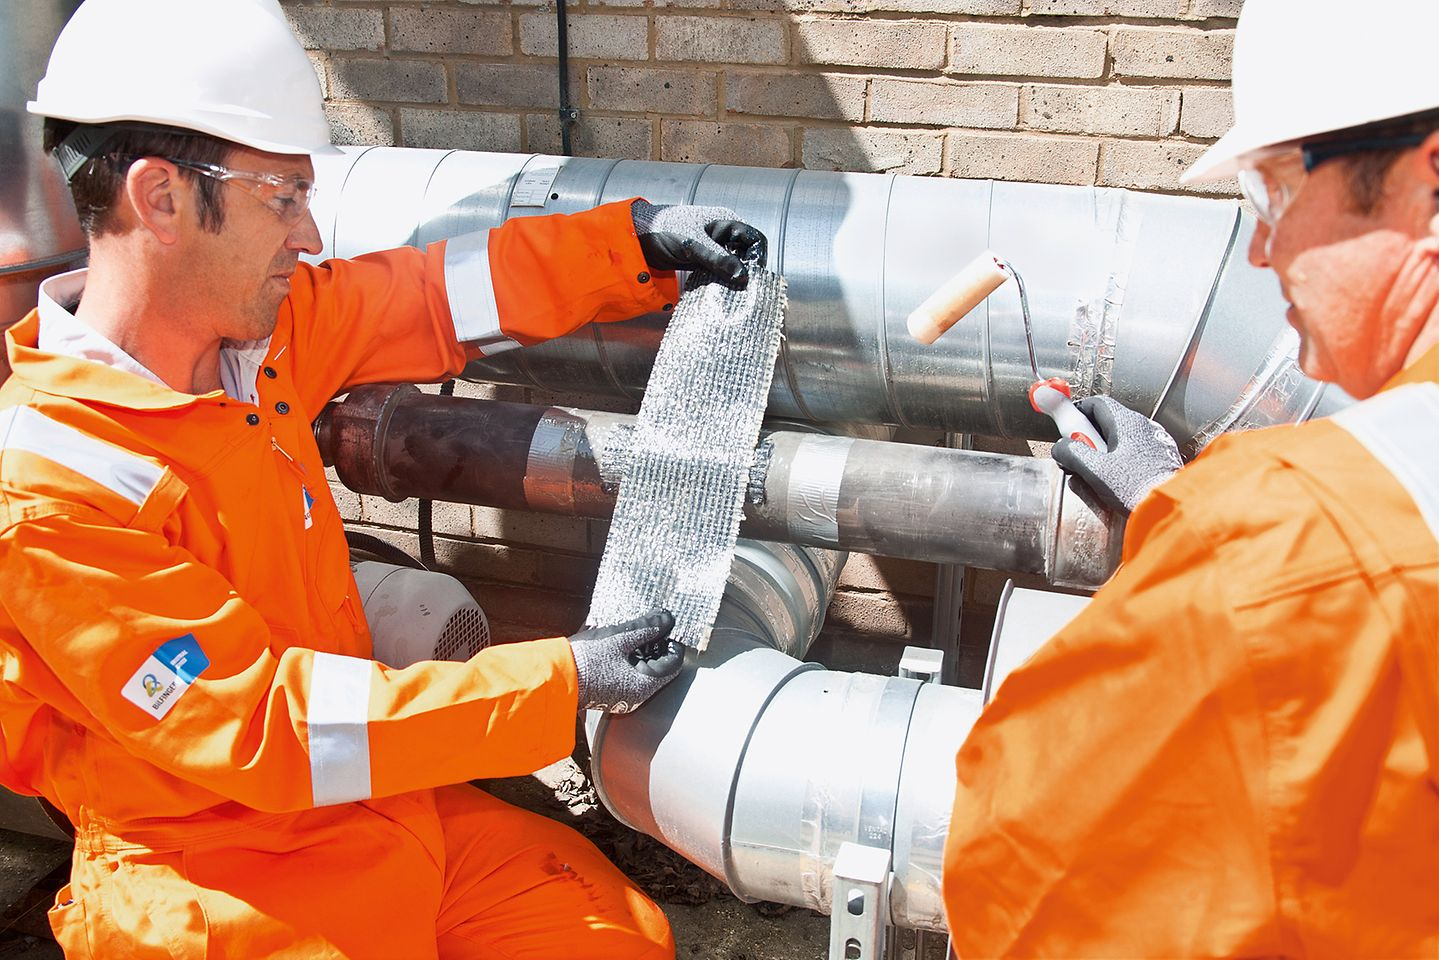 Bilfinger experts repair pipes with products from Henkel